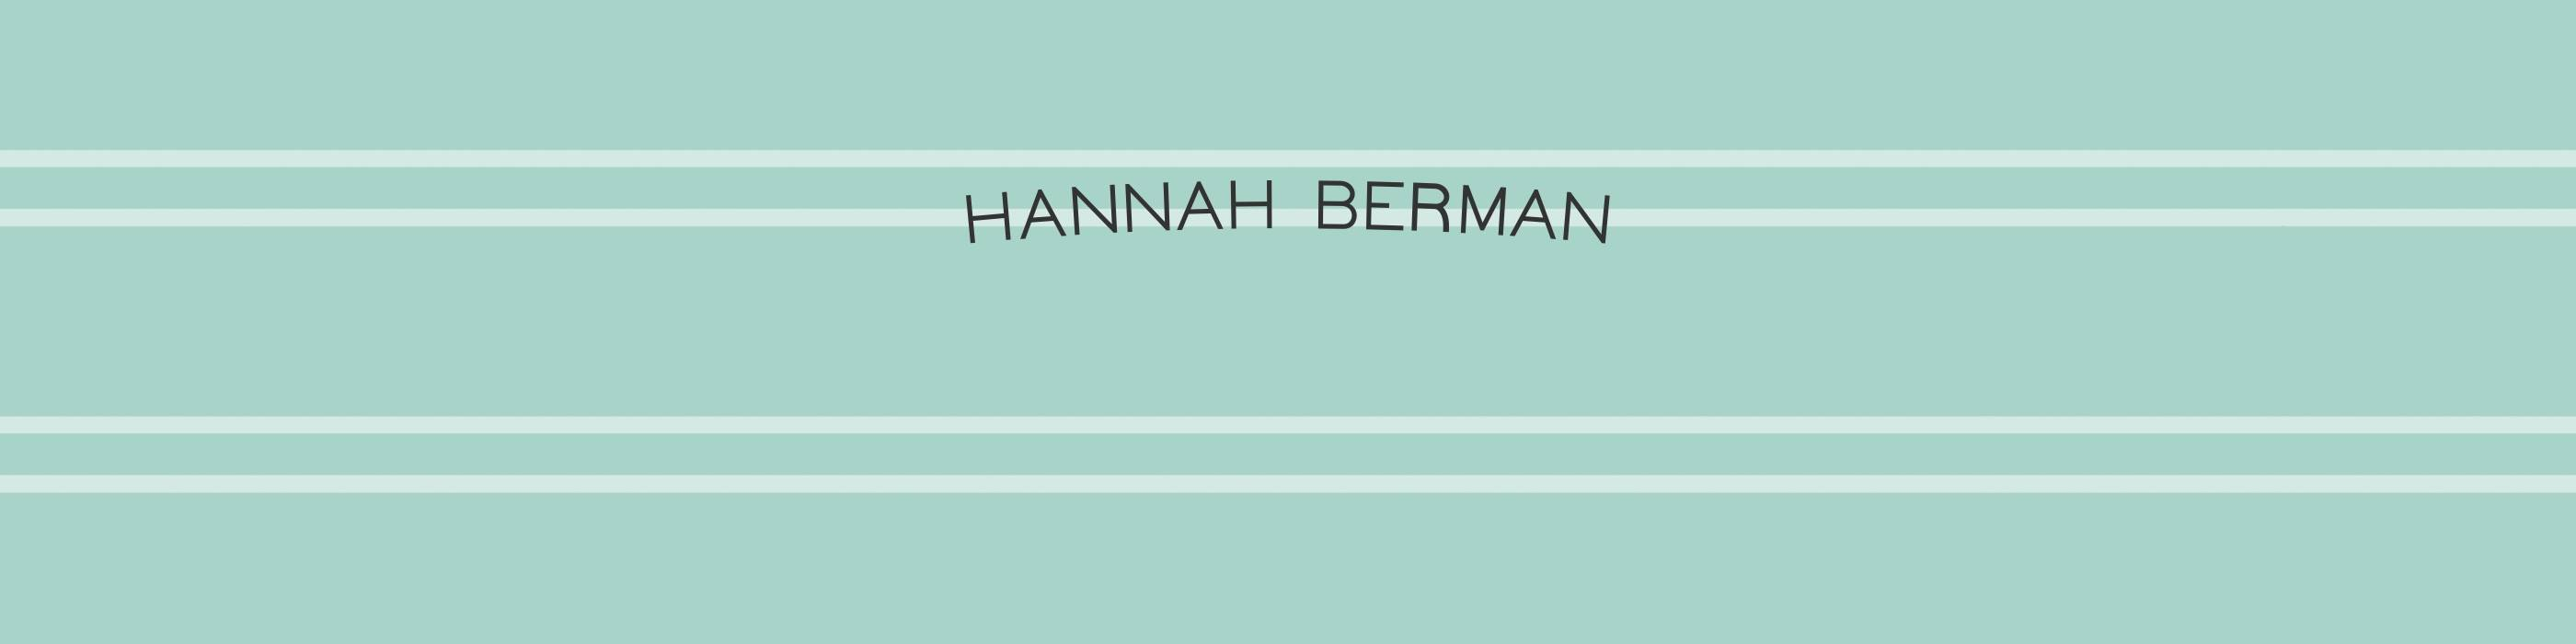 Hannah Berman for Paperless Post